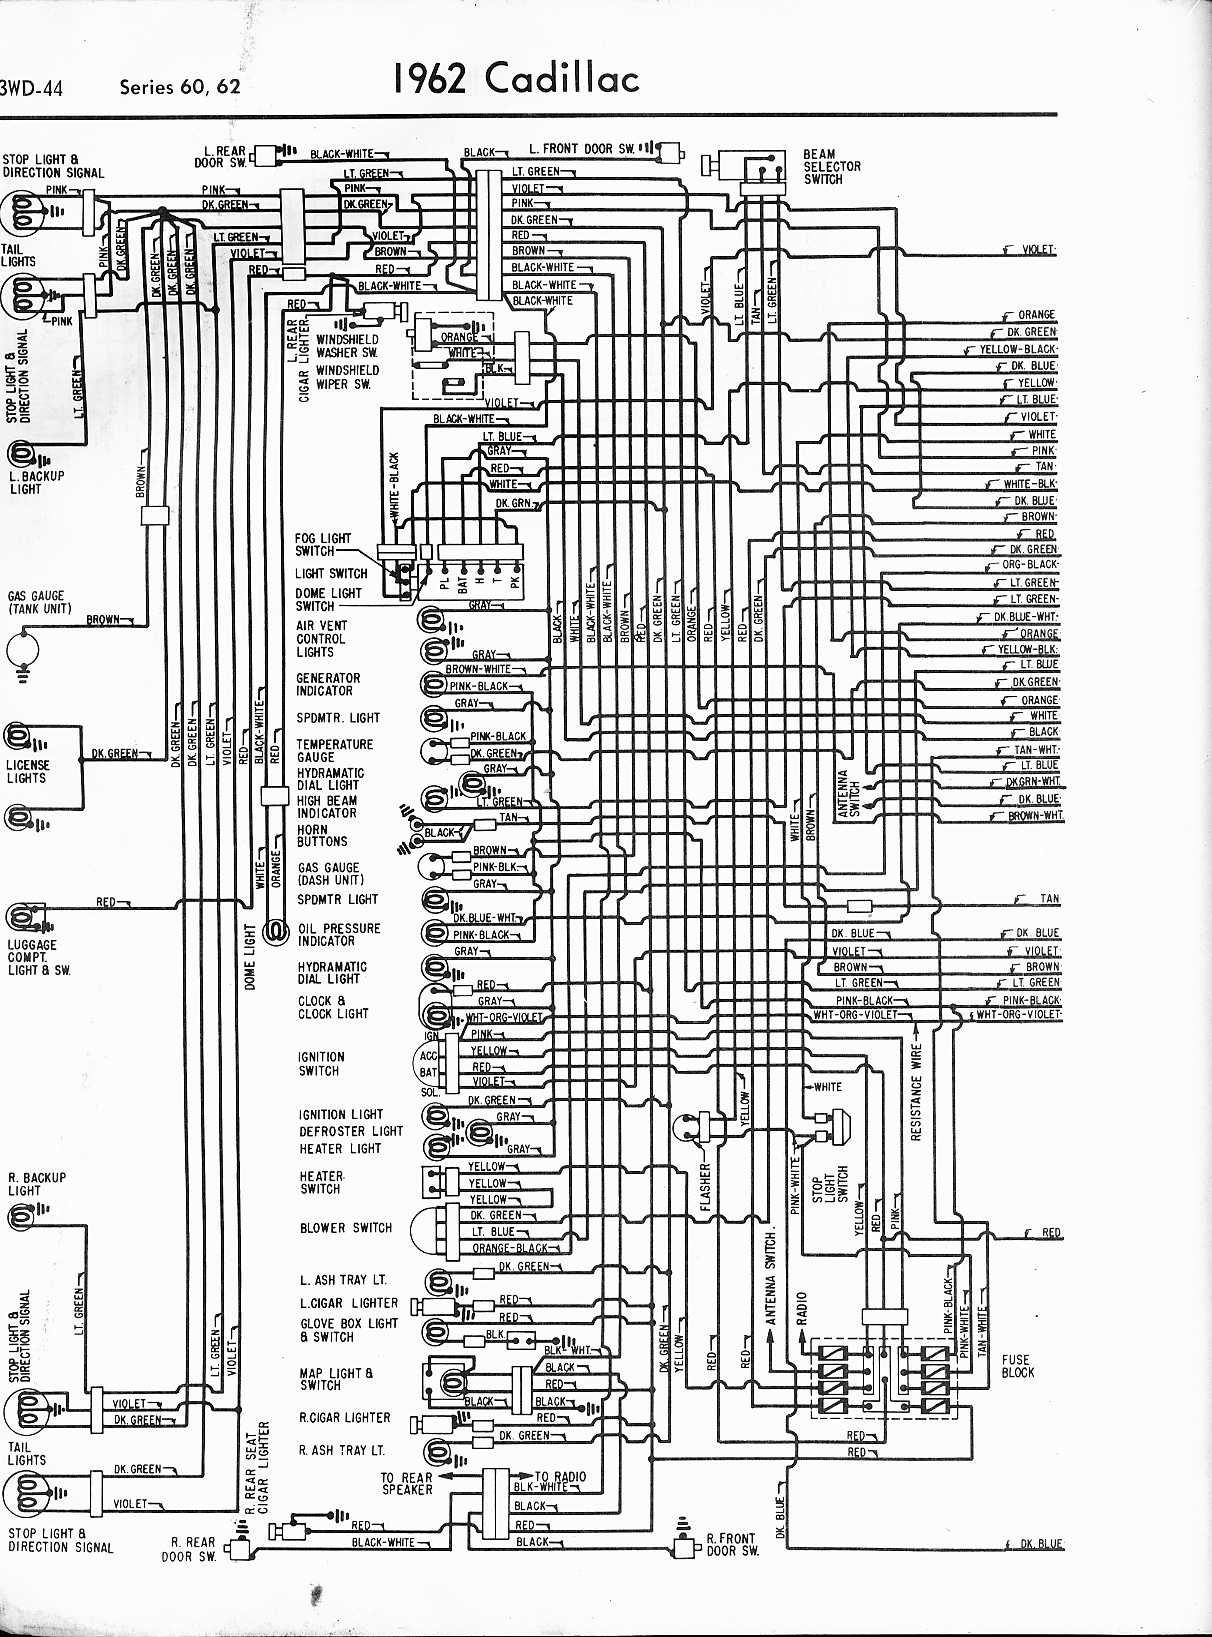 1962 Cadillac 390 Engine Diagram Wiring Diagrams 460 Ford Exploded 1957 1965 Rh Oldcarmanualproject Com Sizes Motor